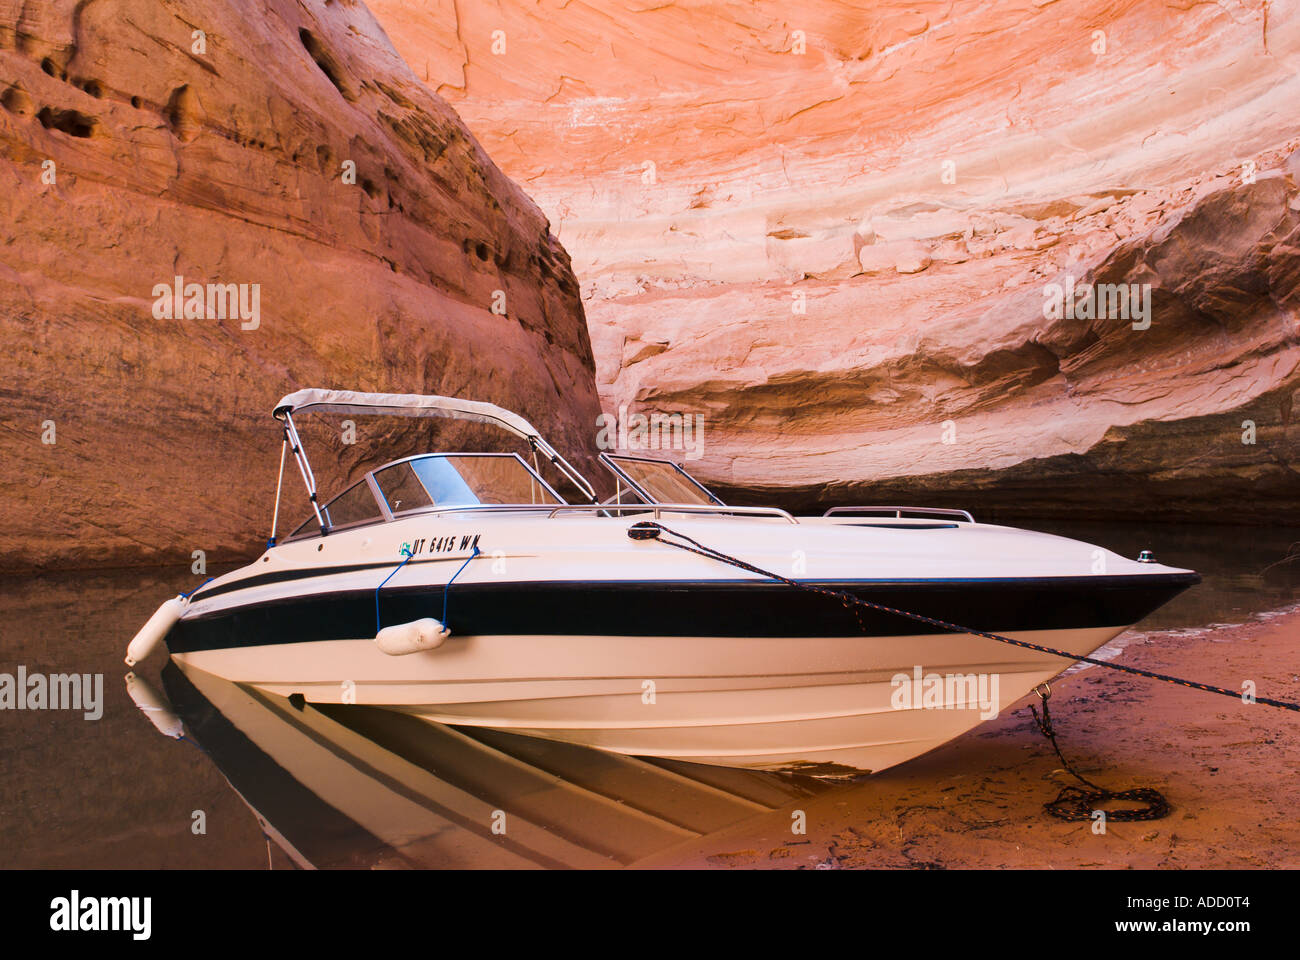 A speedboat adds more graceful curves to the scene at Lake Powell A part of the Glen Canyon National Recreation Area - Stock Image